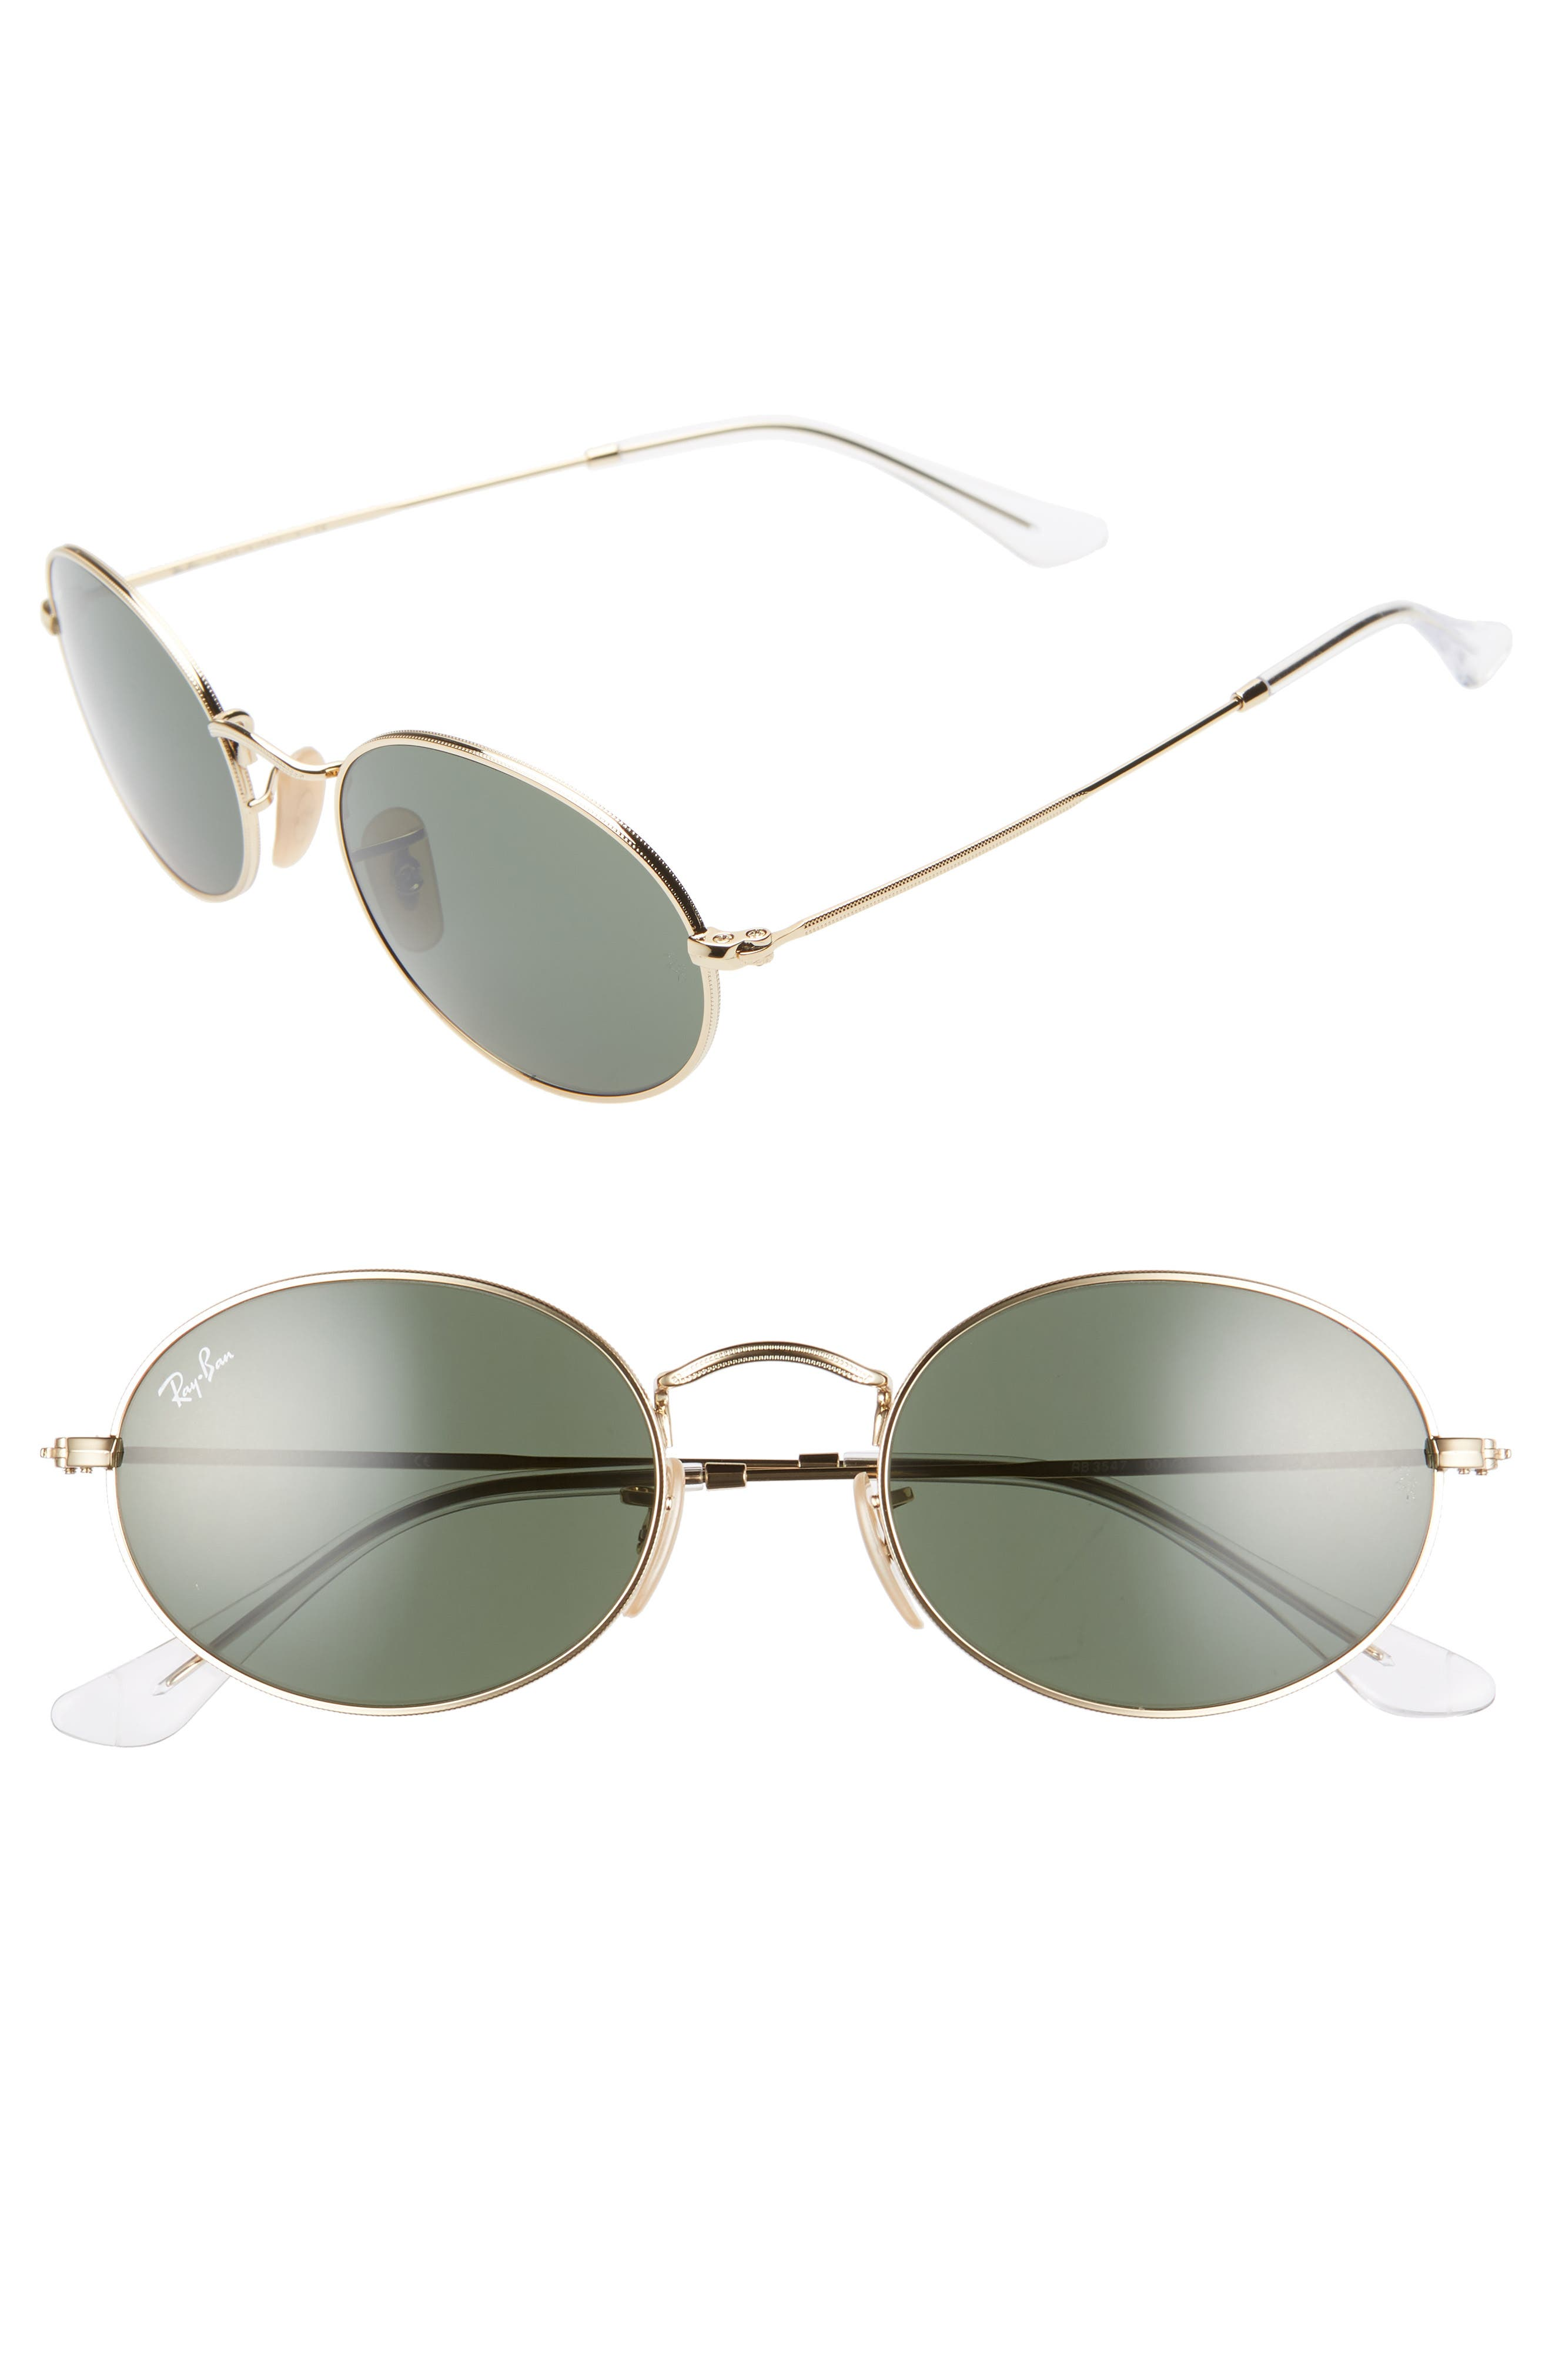 Ray-Ban 5m Round Sunglasses - Gold/ Black Solid